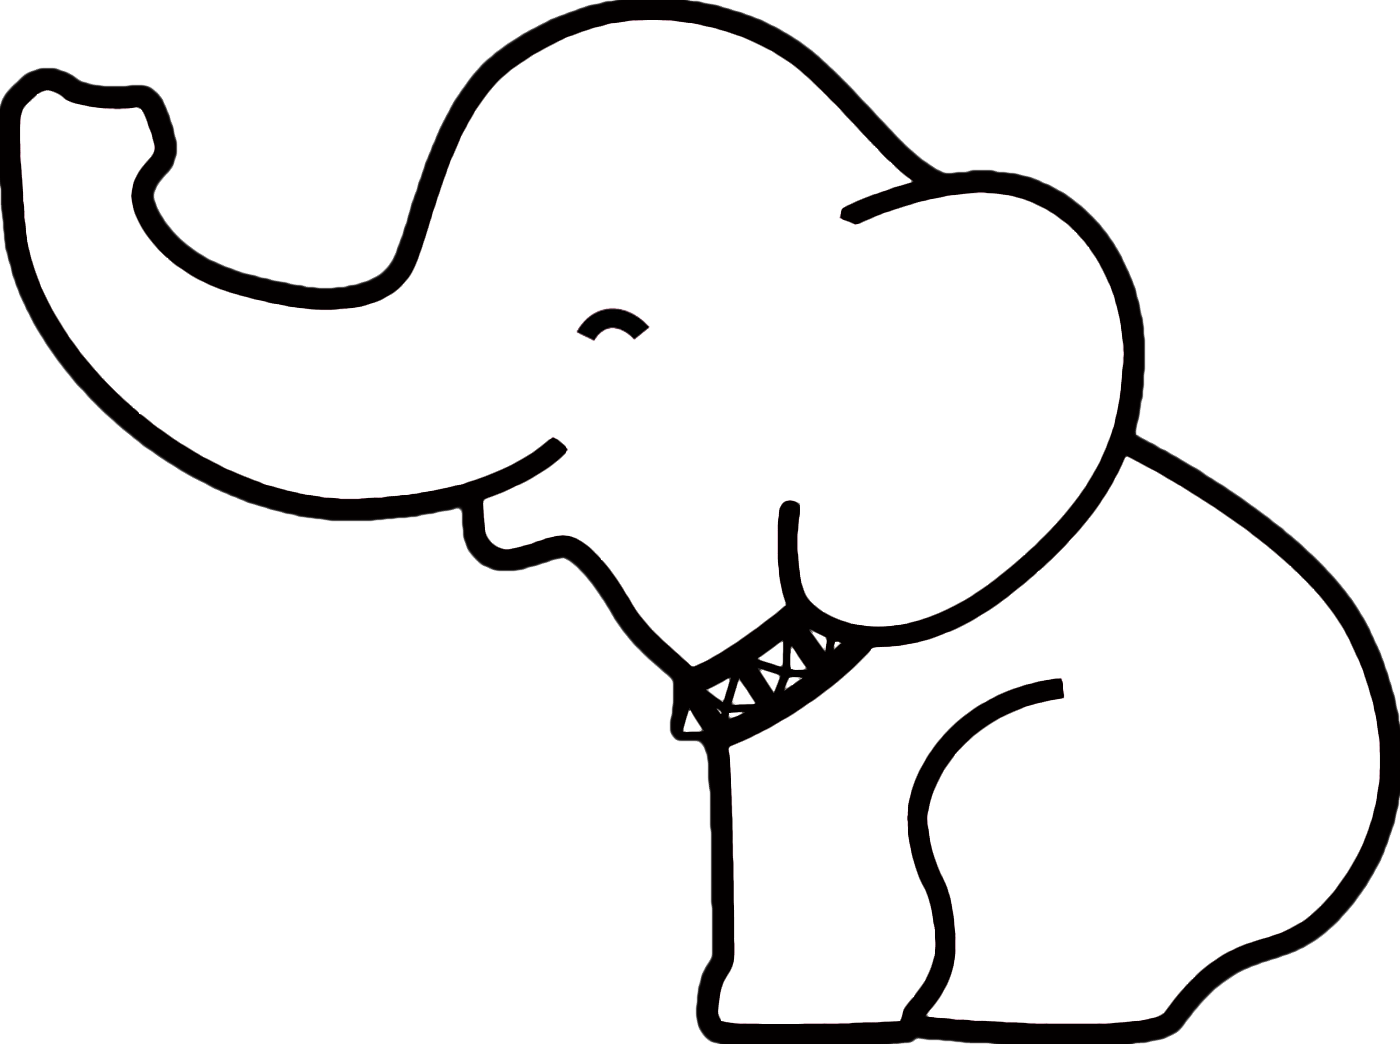 elephant outline coloring page elephant drawing outline at getdrawings free download coloring elephant outline page